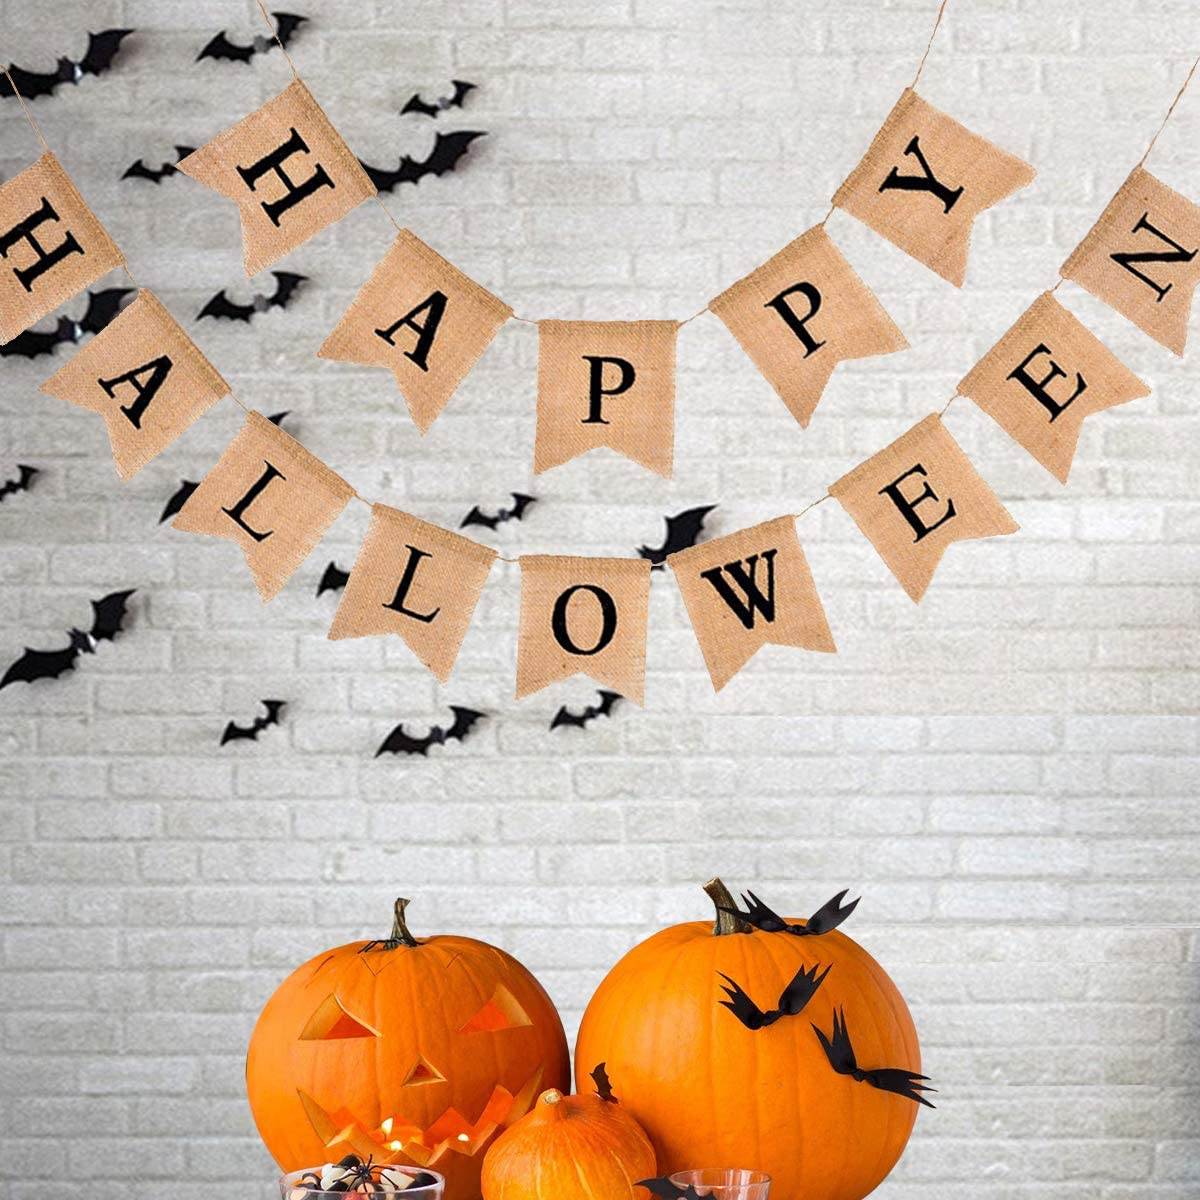 Happy Halloween Burlap Banner Decor, 14Pcs Linen Bunting Hanging Banner Ornaments Halloween Home Party Wall Decoration Supplies